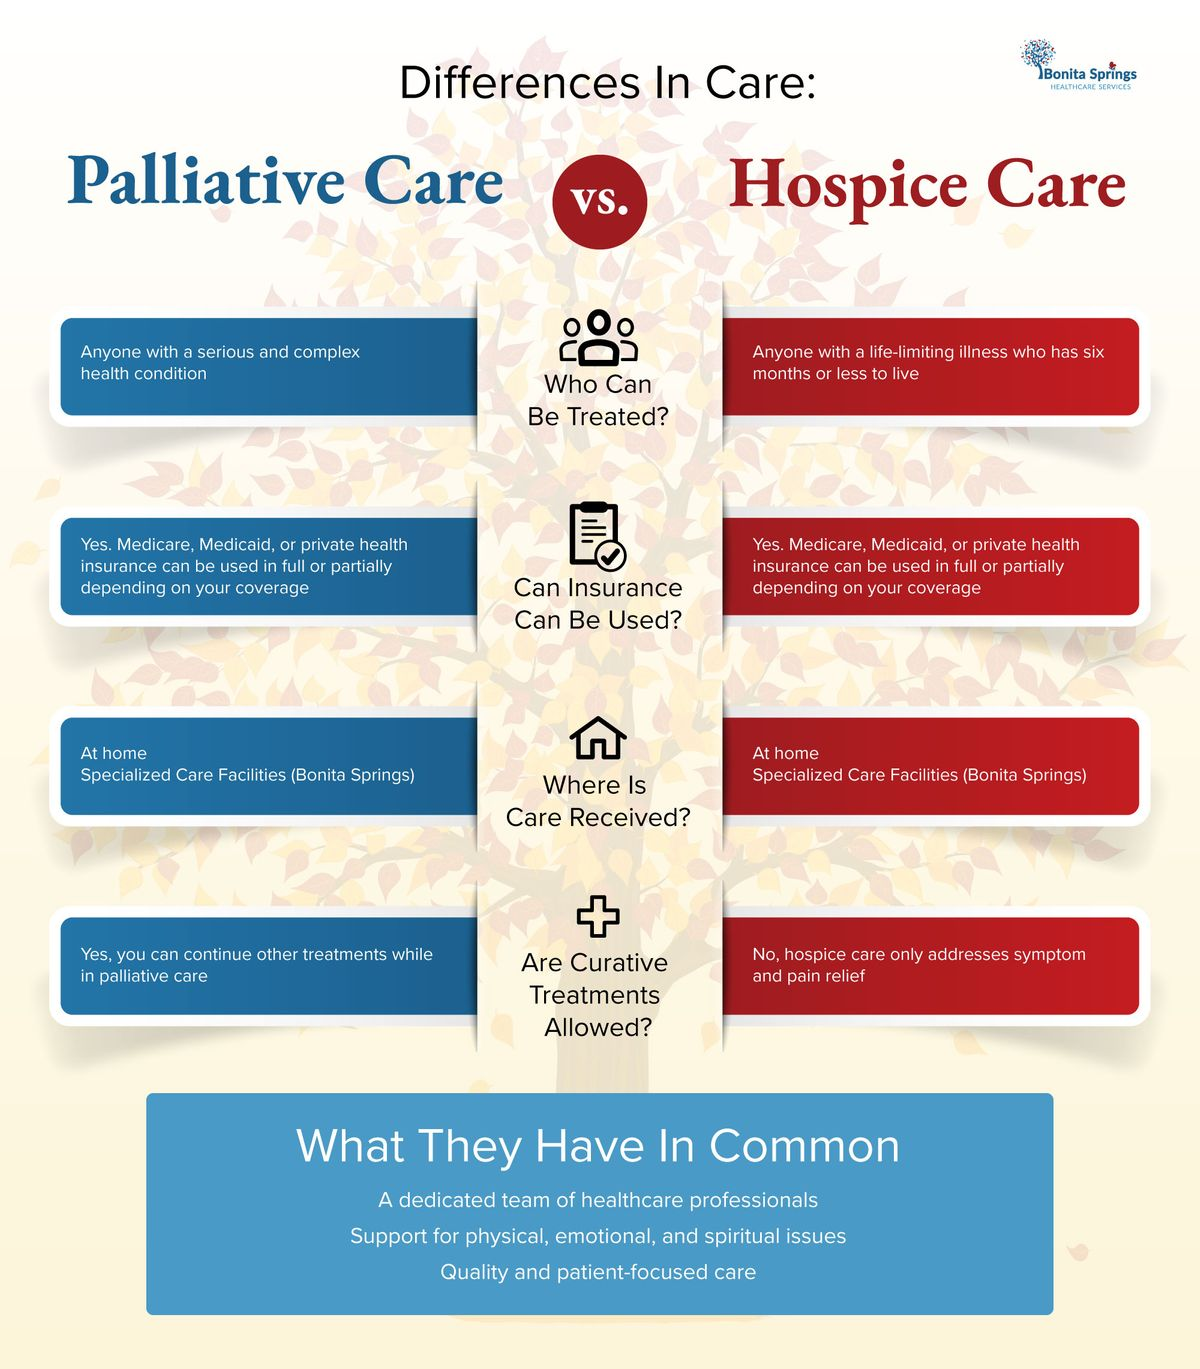 differences-in-care-infographic.jpg